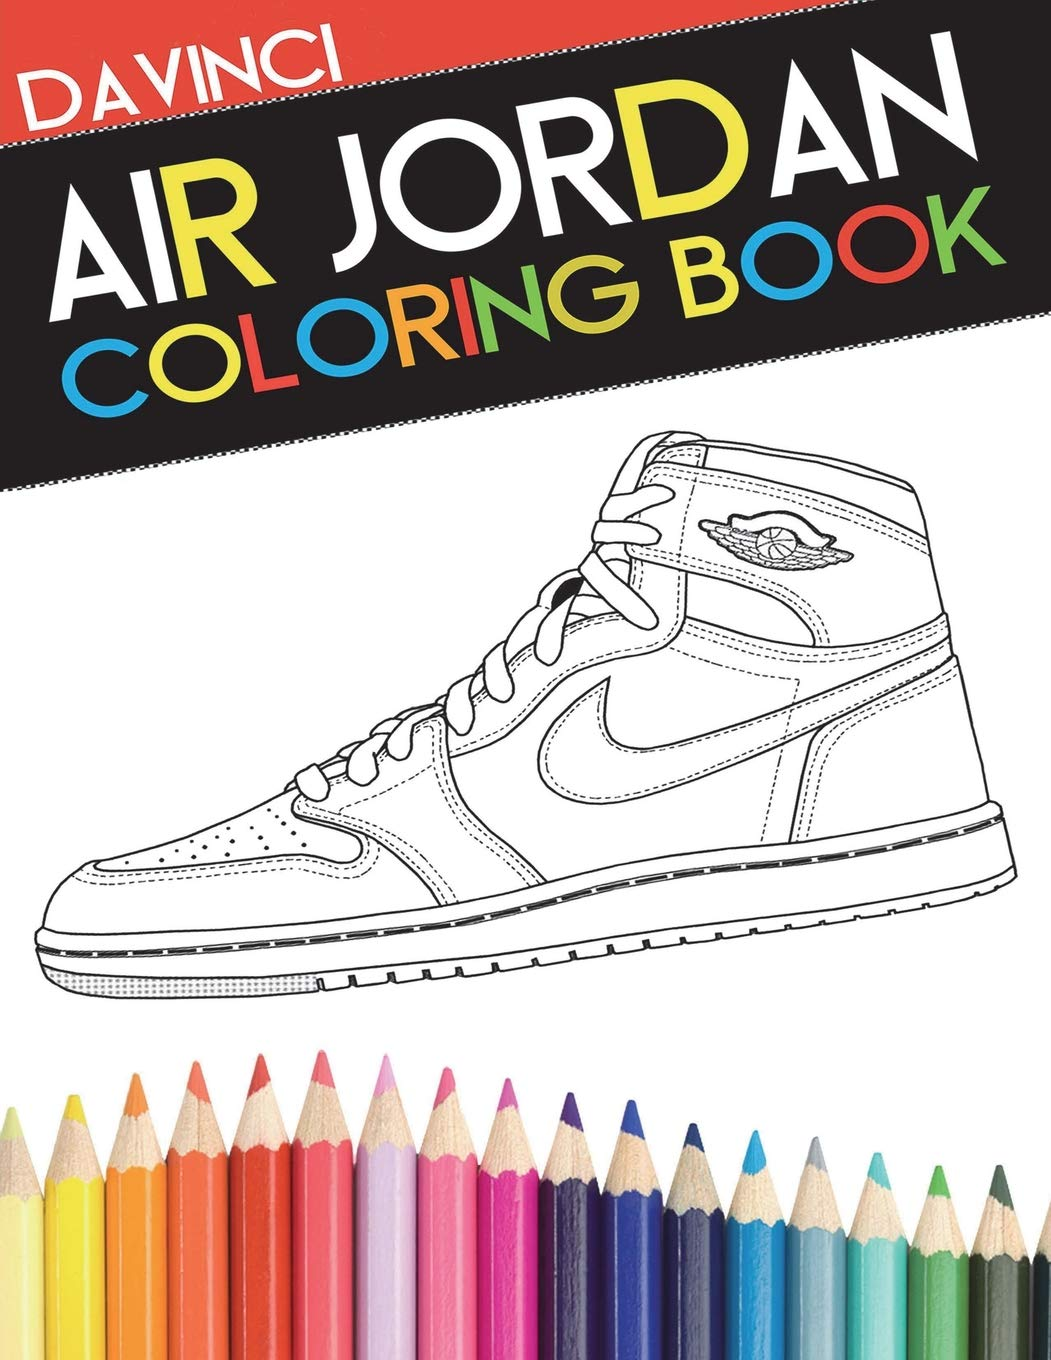 - Air Jordan Coloring Book: Sneaker Adult Coloring Book: Davinci